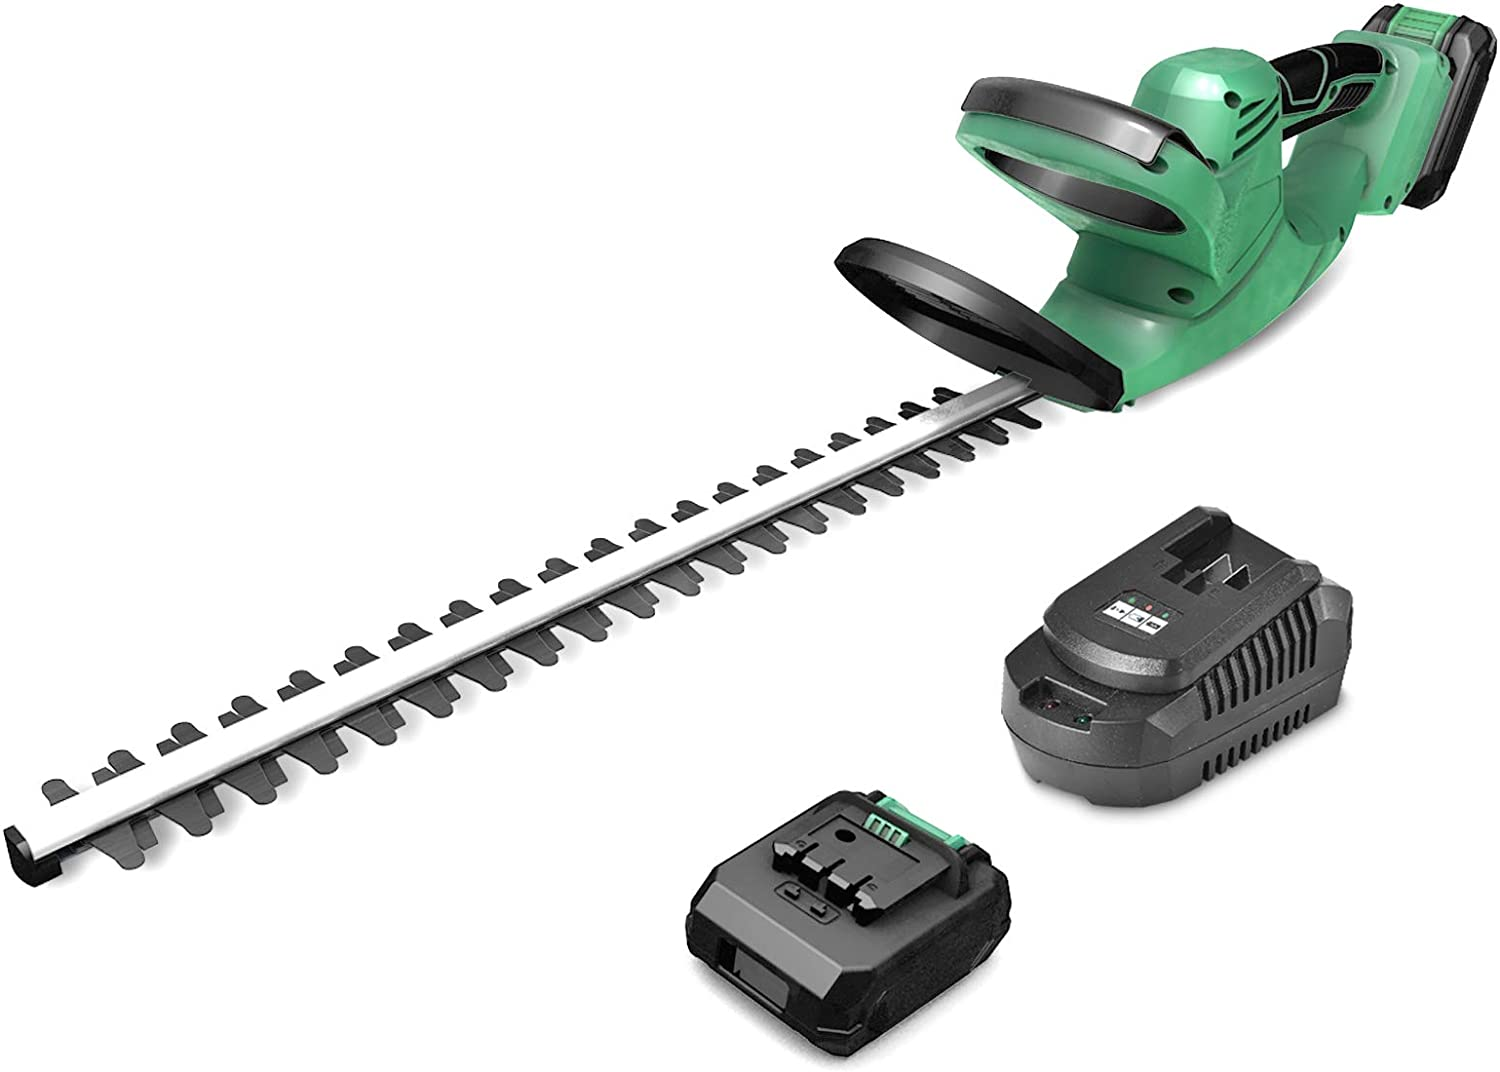 """KIMO 20V Cordless Hedge Trimmer w/ 2.0Ah Li-ion Battery, 6.8-lb Lightweight & Compact Dual Blades 5/8"""" Cutting Capacity 20-inch Battery Electric Pole Hedge Trimmer ET1609 for Hedges/Bushes/Branch"""